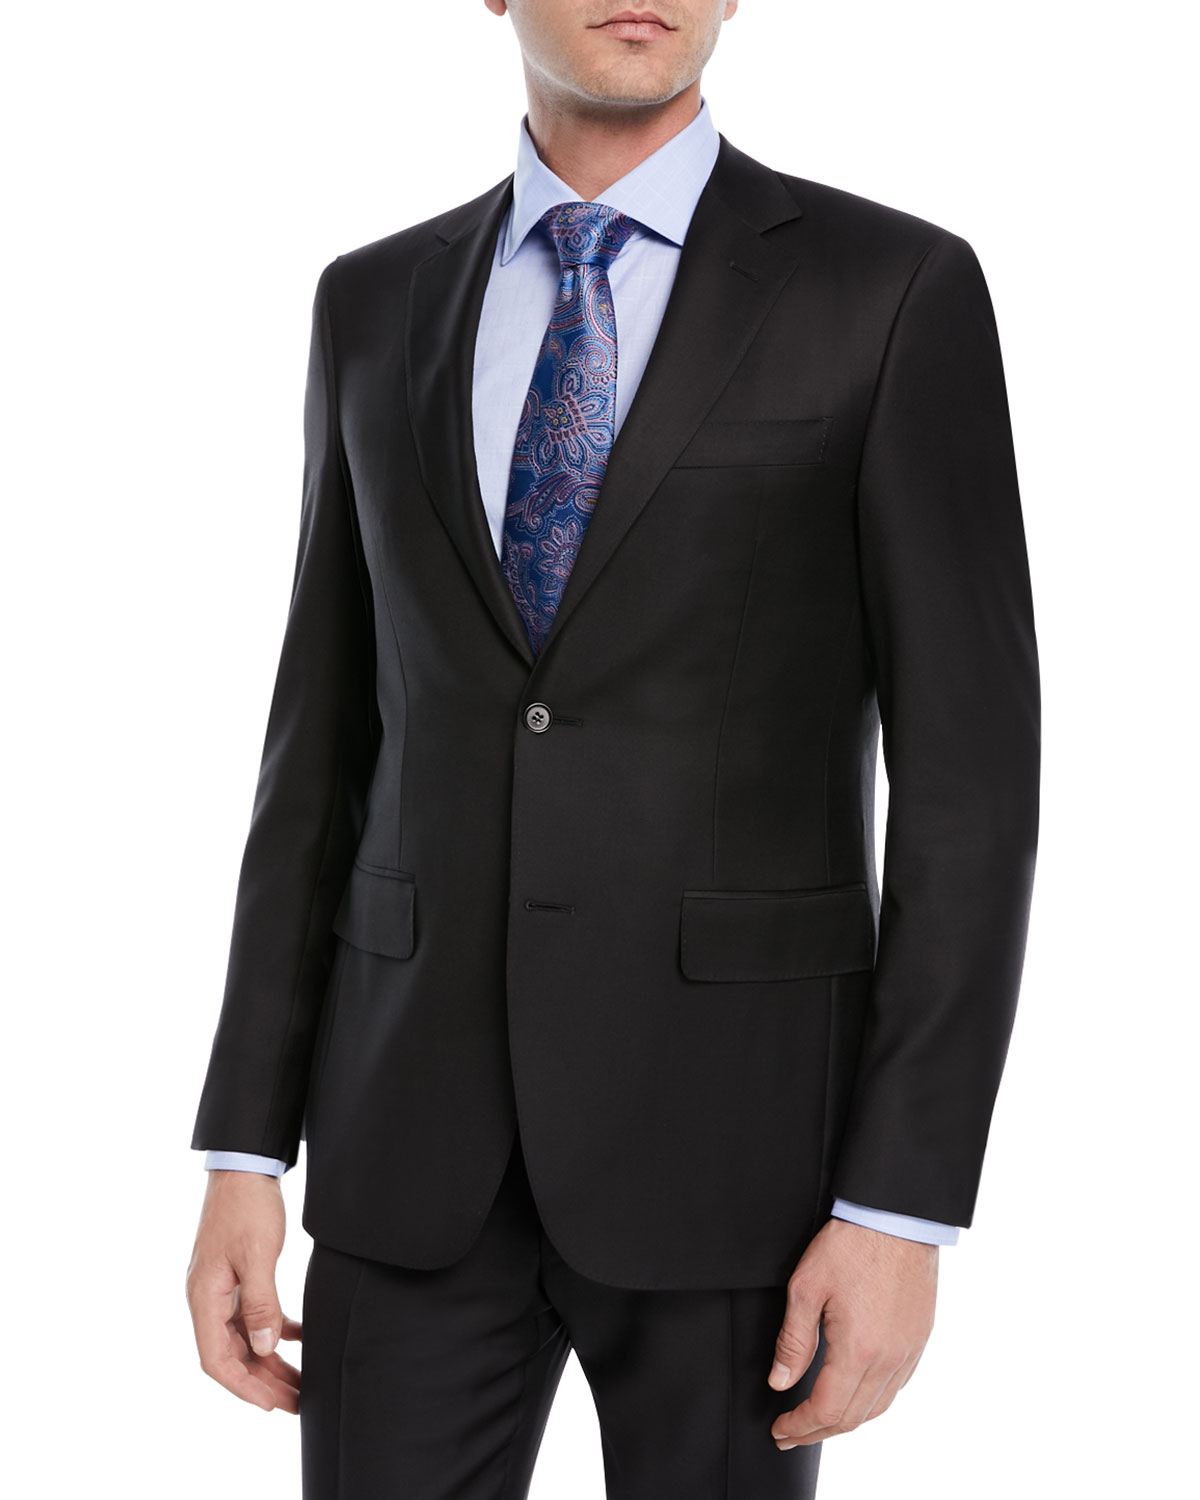 Super 130s Wool Twill Two-Piece Suit